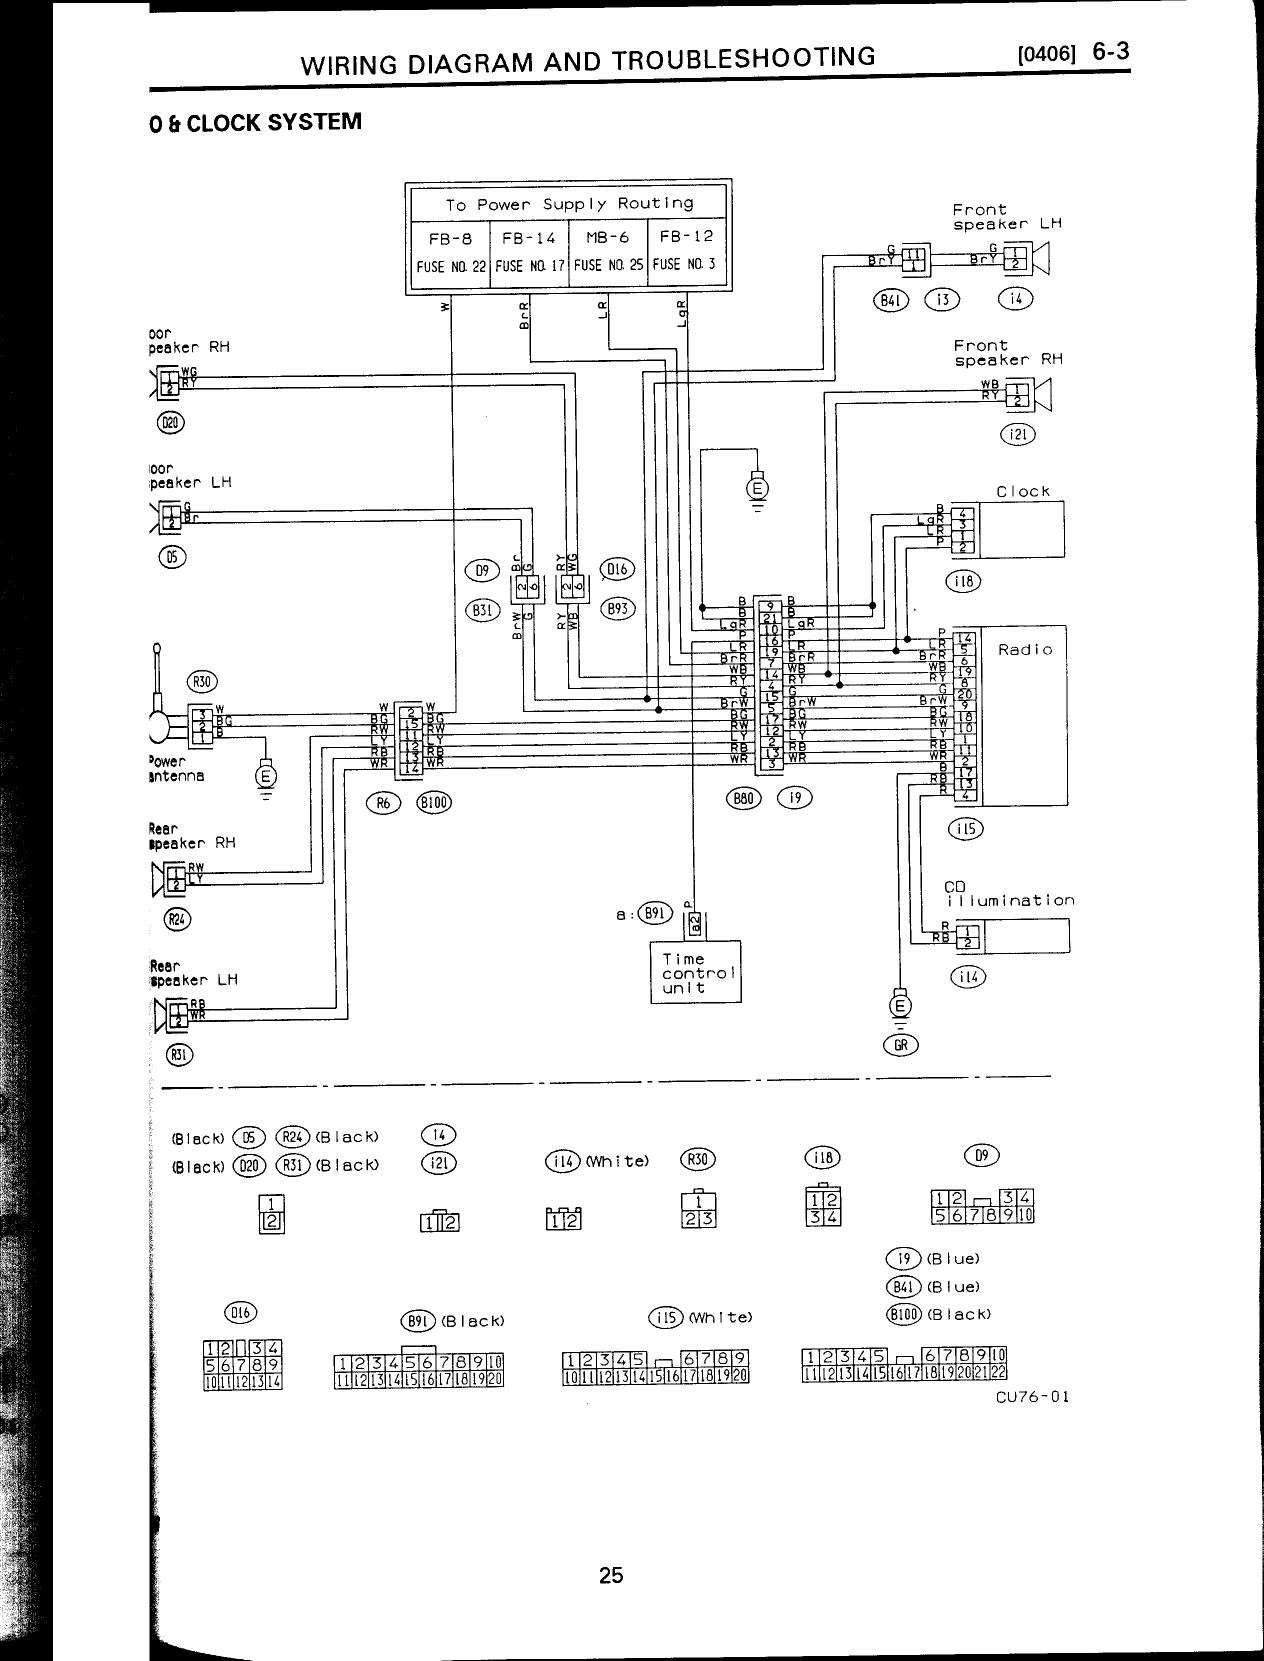 251 j SVXRadioWrg subaru svx receiver and speaker installation hu install pioneer double din wiring diagram at gsmx.co